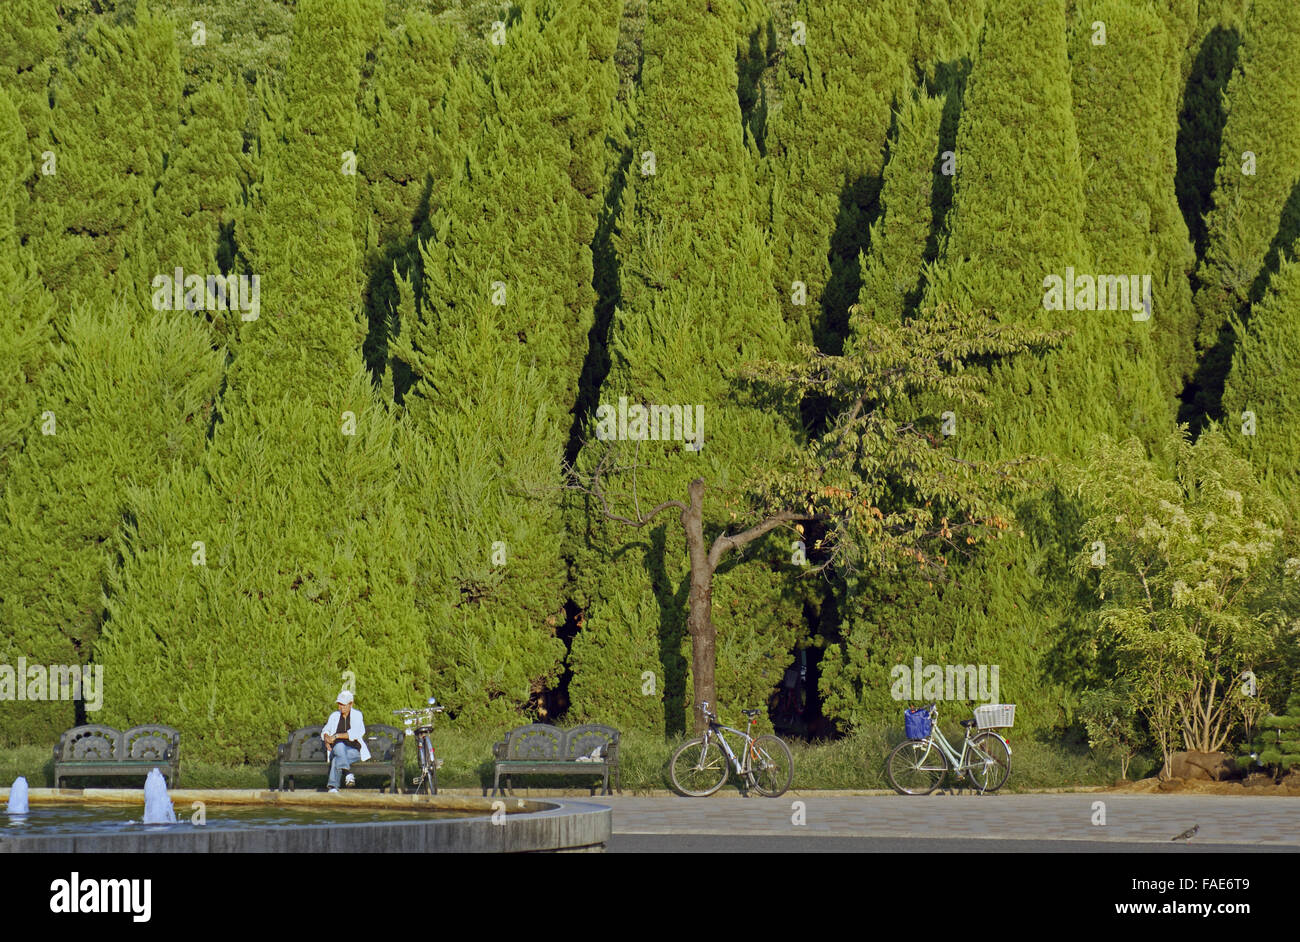 Giant conifer hedge - Stock Image